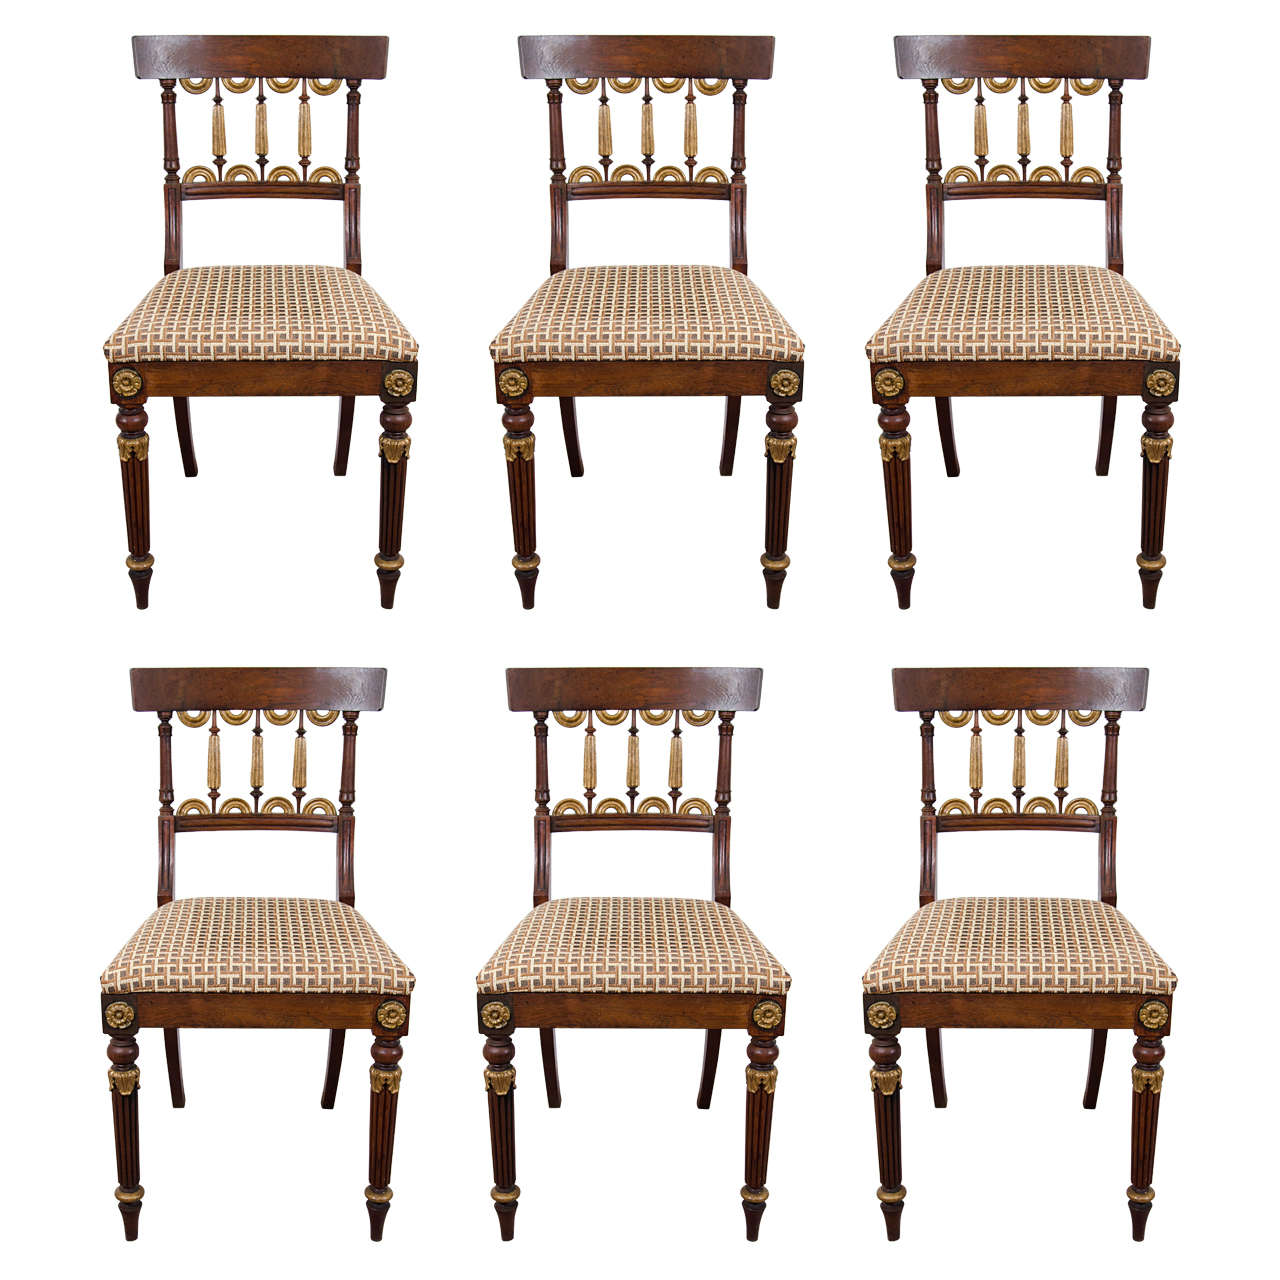 19th Century Set of Six Rosewood Dining or Side Chairs with Gilt Detail